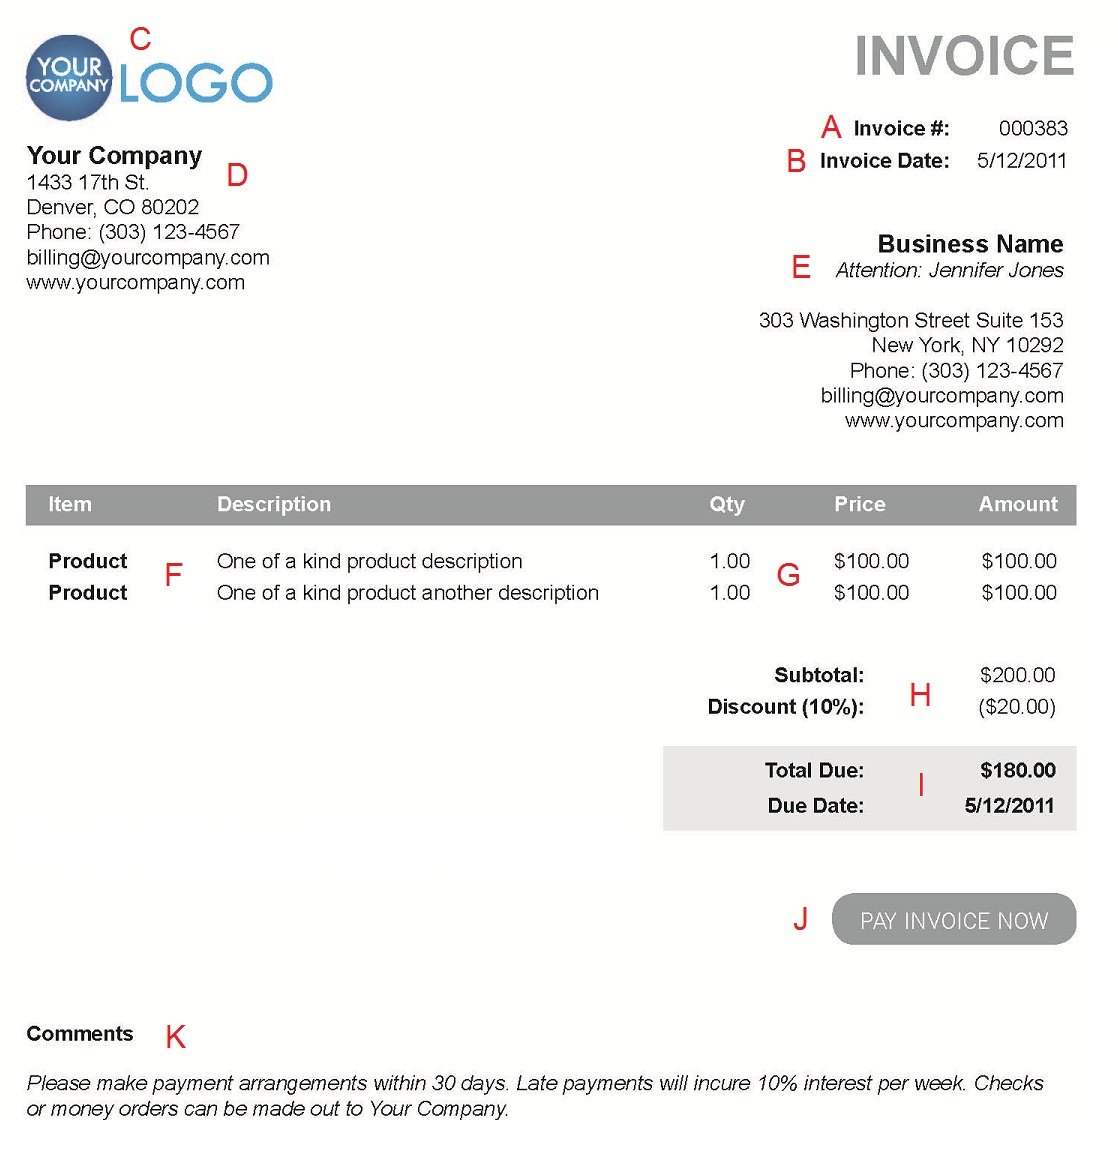 Usdgus  Personable The  Different Sections Of An Electronic Payment Invoice With Entrancing A  With Astonishing Invoices Templates Word Also Office Templates Invoice In Addition Sliq Invoicing Plus And How To Make A Invoice Template In Word As Well As Xero Invoice Templates Download Additionally Tax Invoice Format In Excel From Paysimplecom With Usdgus  Entrancing The  Different Sections Of An Electronic Payment Invoice With Astonishing A  And Personable Invoices Templates Word Also Office Templates Invoice In Addition Sliq Invoicing Plus From Paysimplecom